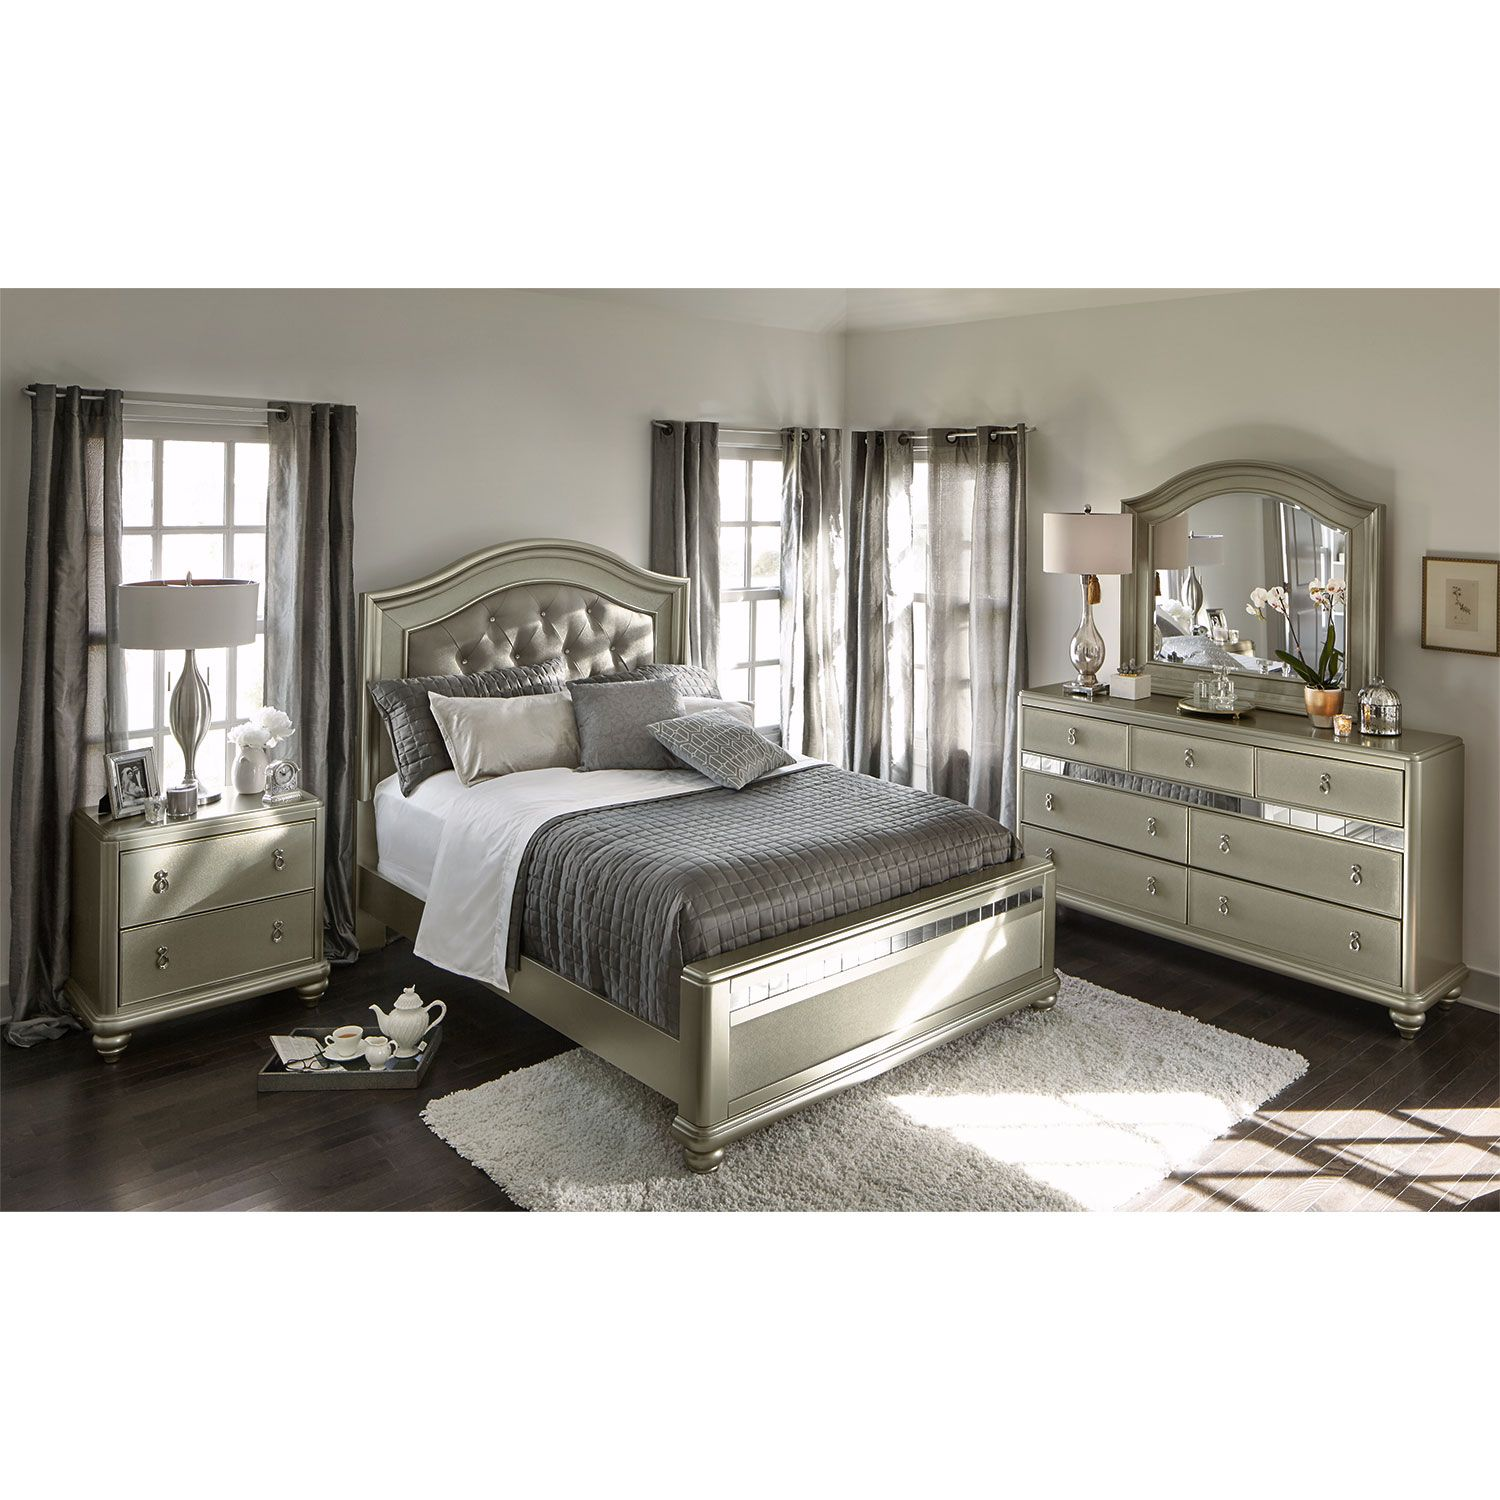 The Serena Bedroom Suite Offers An Air Of Sophistication And Glamour That  Anyone